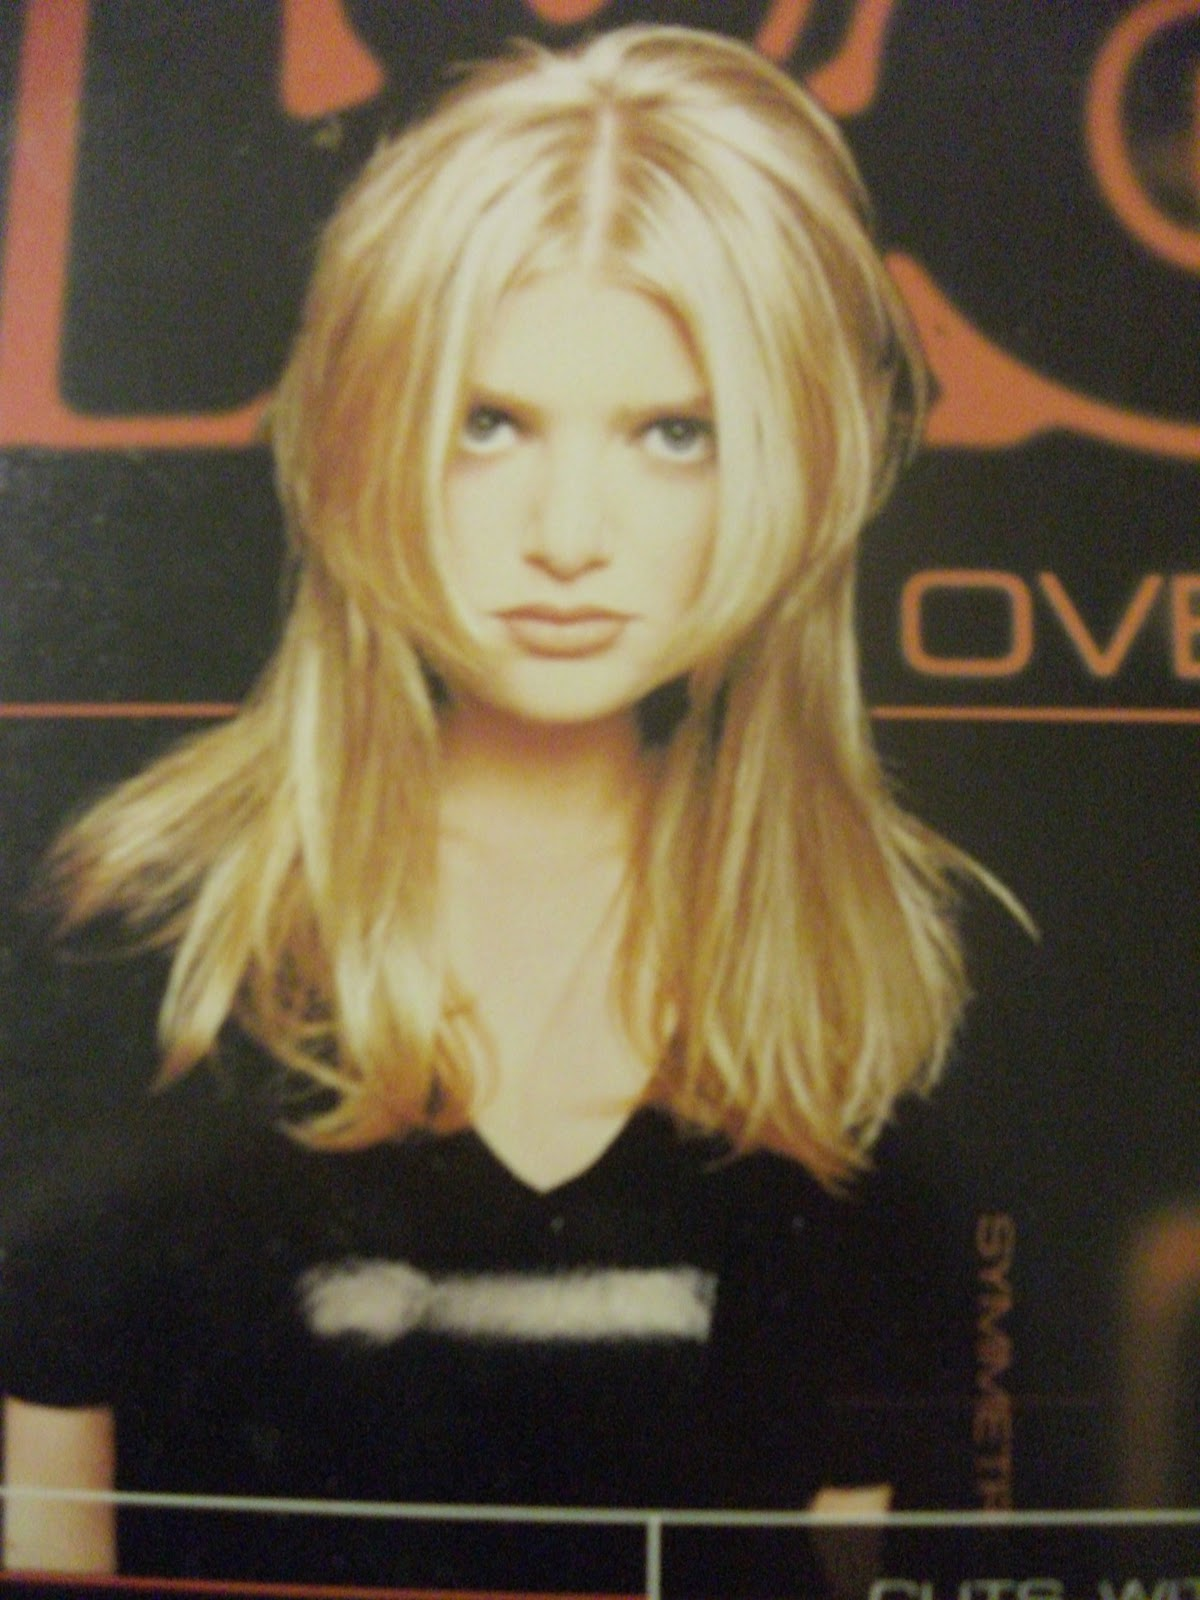 Toni And Guy Through The Years 1996 2011 1996 Cuts With Perspective